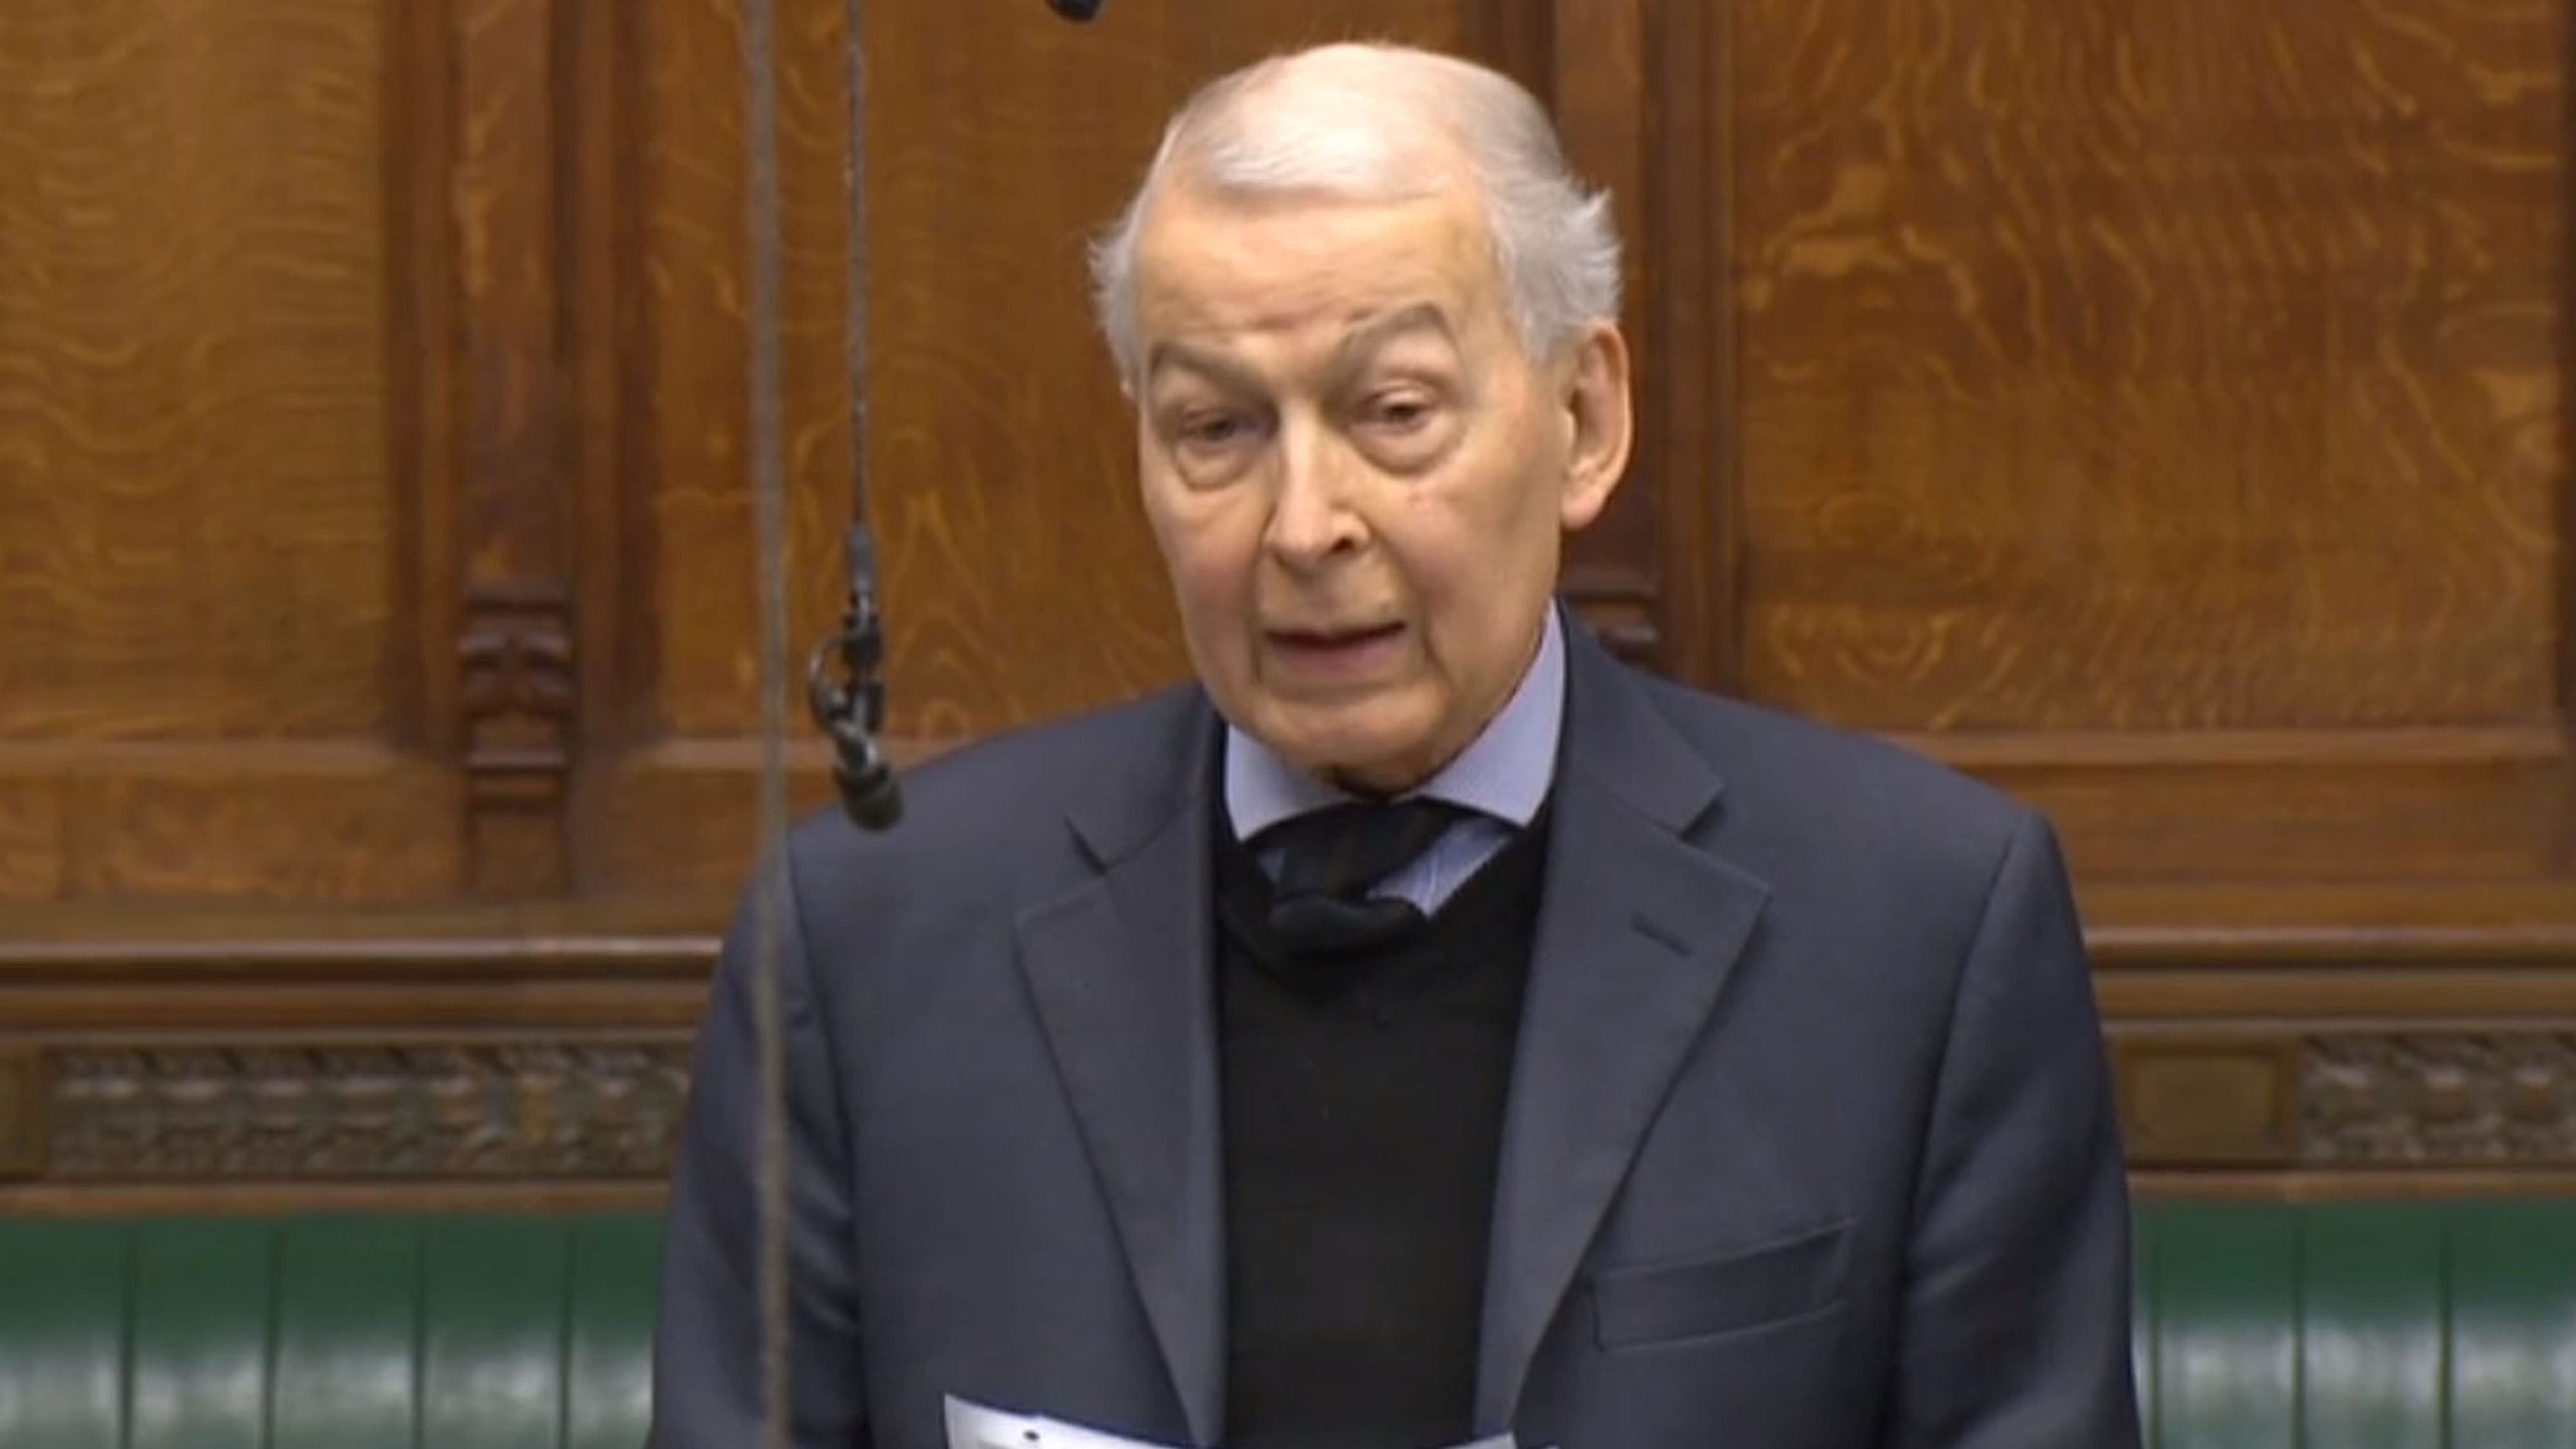 Frank Field MP to resign Labour whip over 'toleration of anti-Semitism'